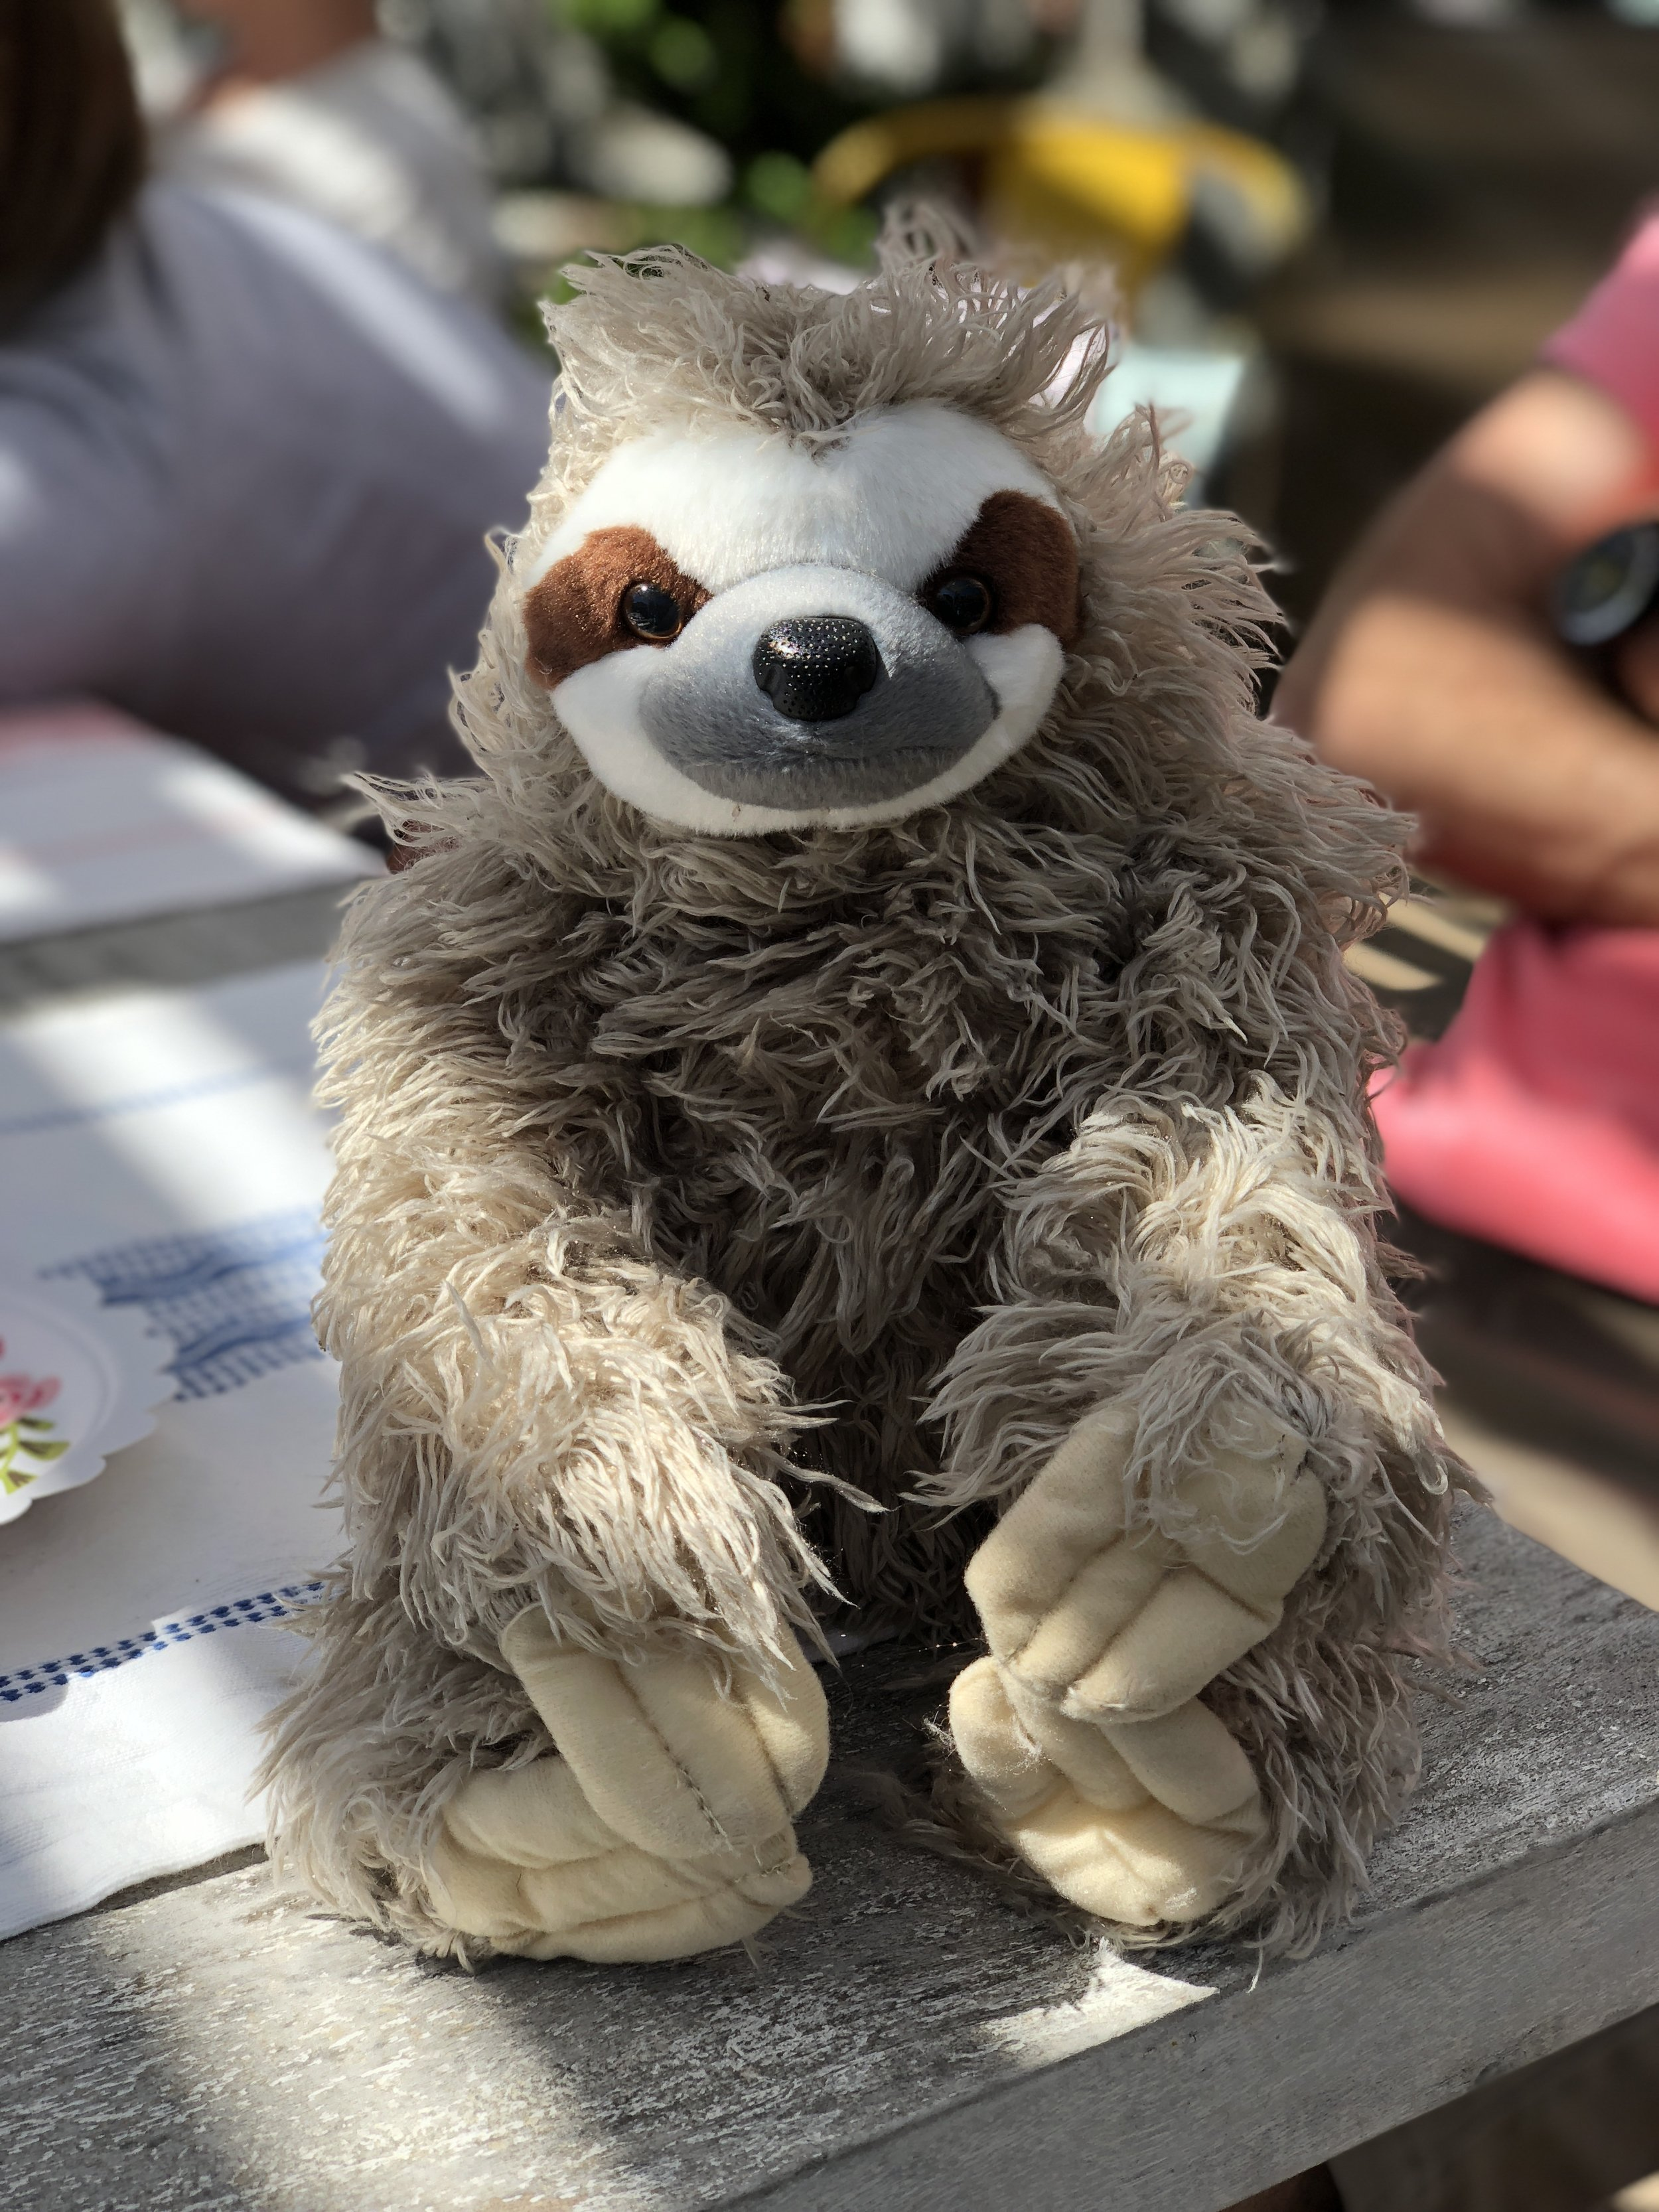 Joseph's aunt, Mary, gave Andy a plush sloth. Here he is, dramatically shot.